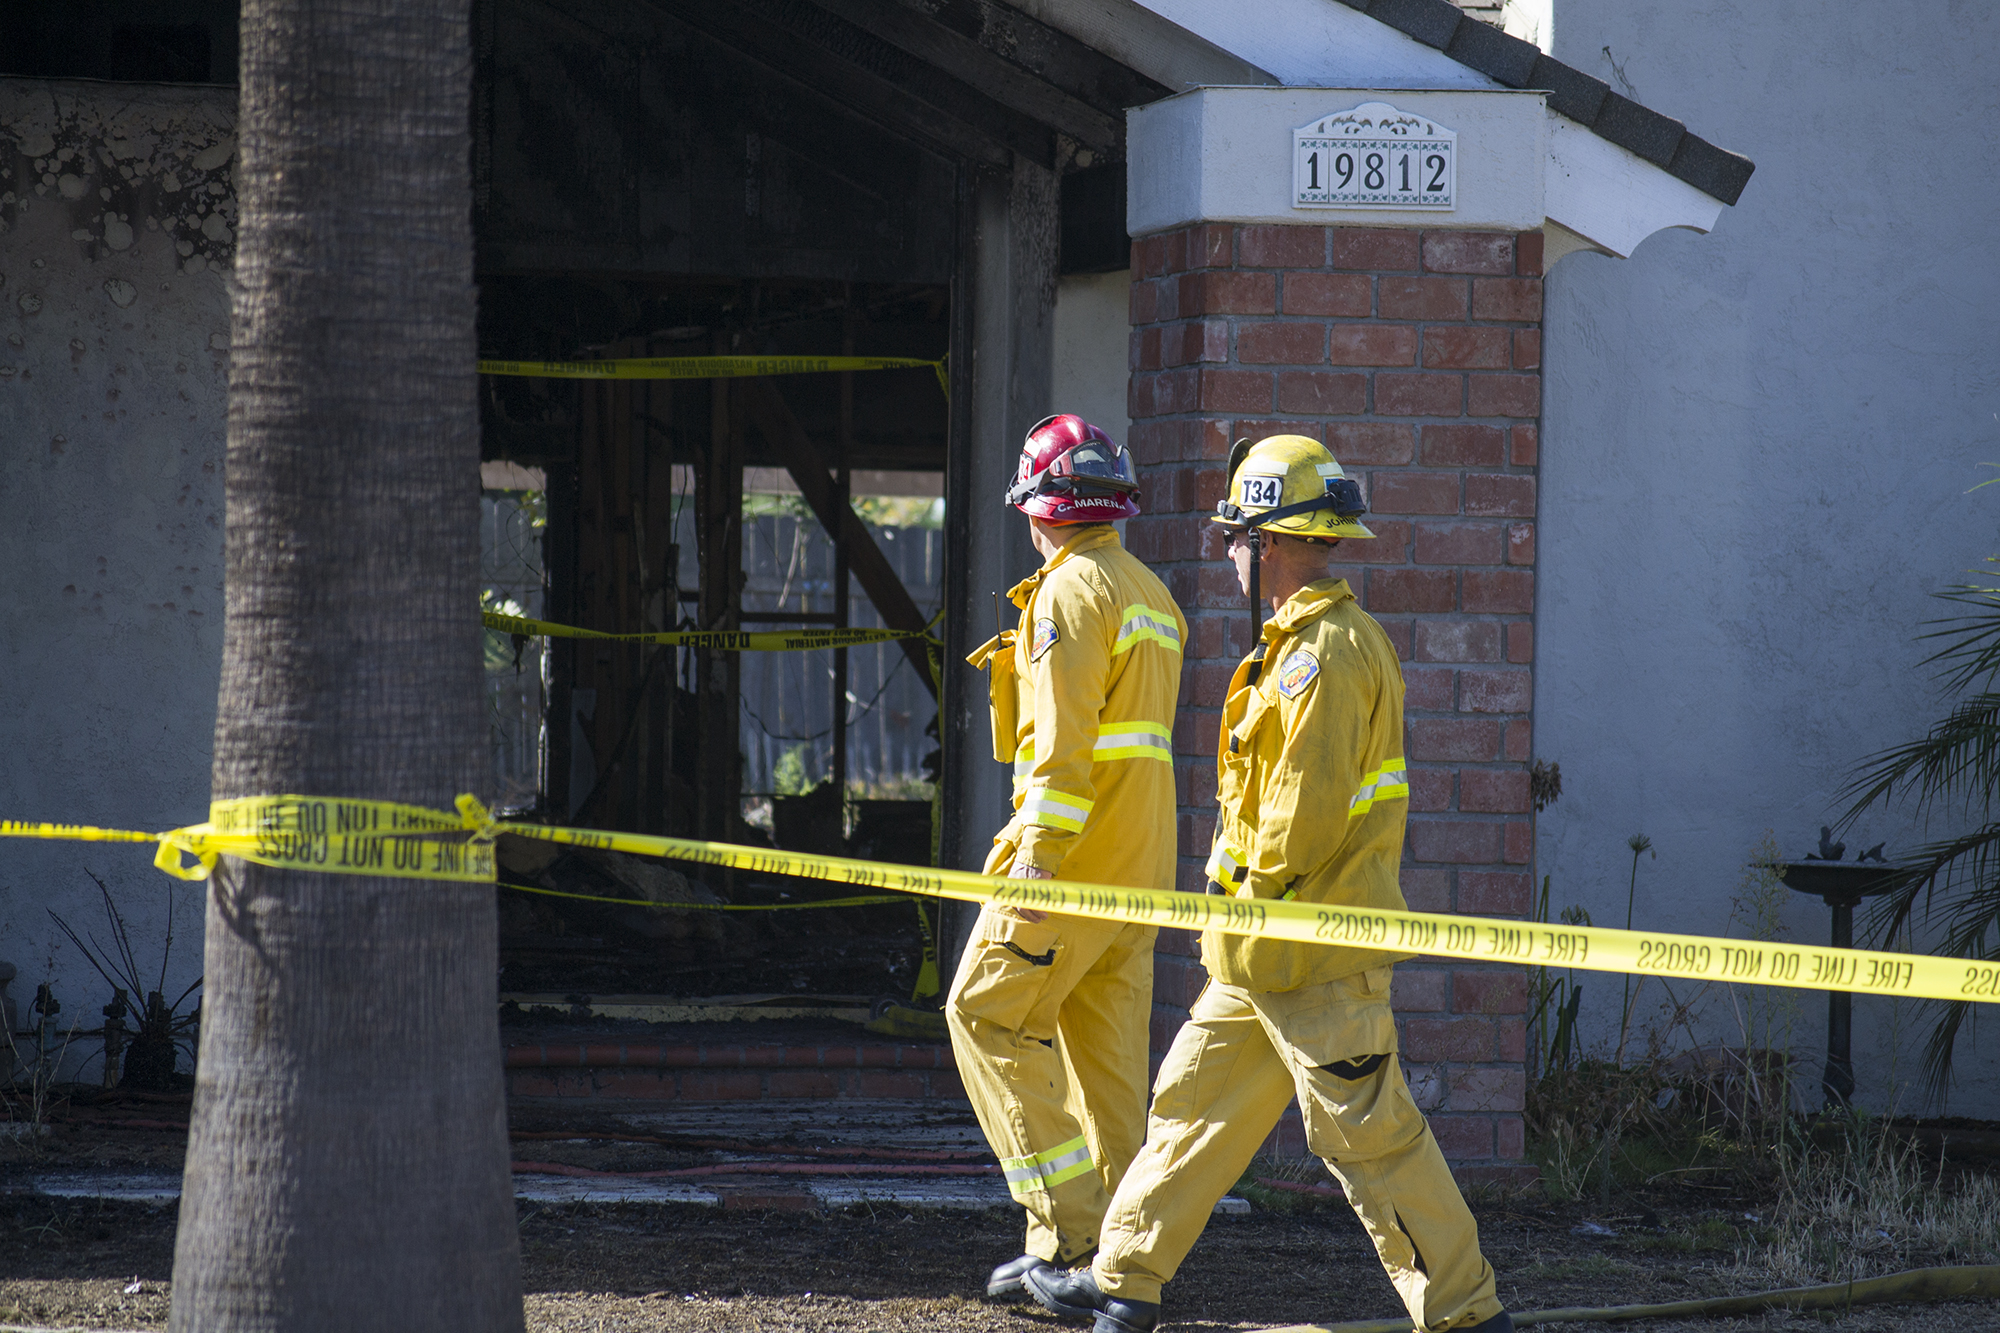 Firefighters investigate the burned house on Thursday morning, Sept. 18.